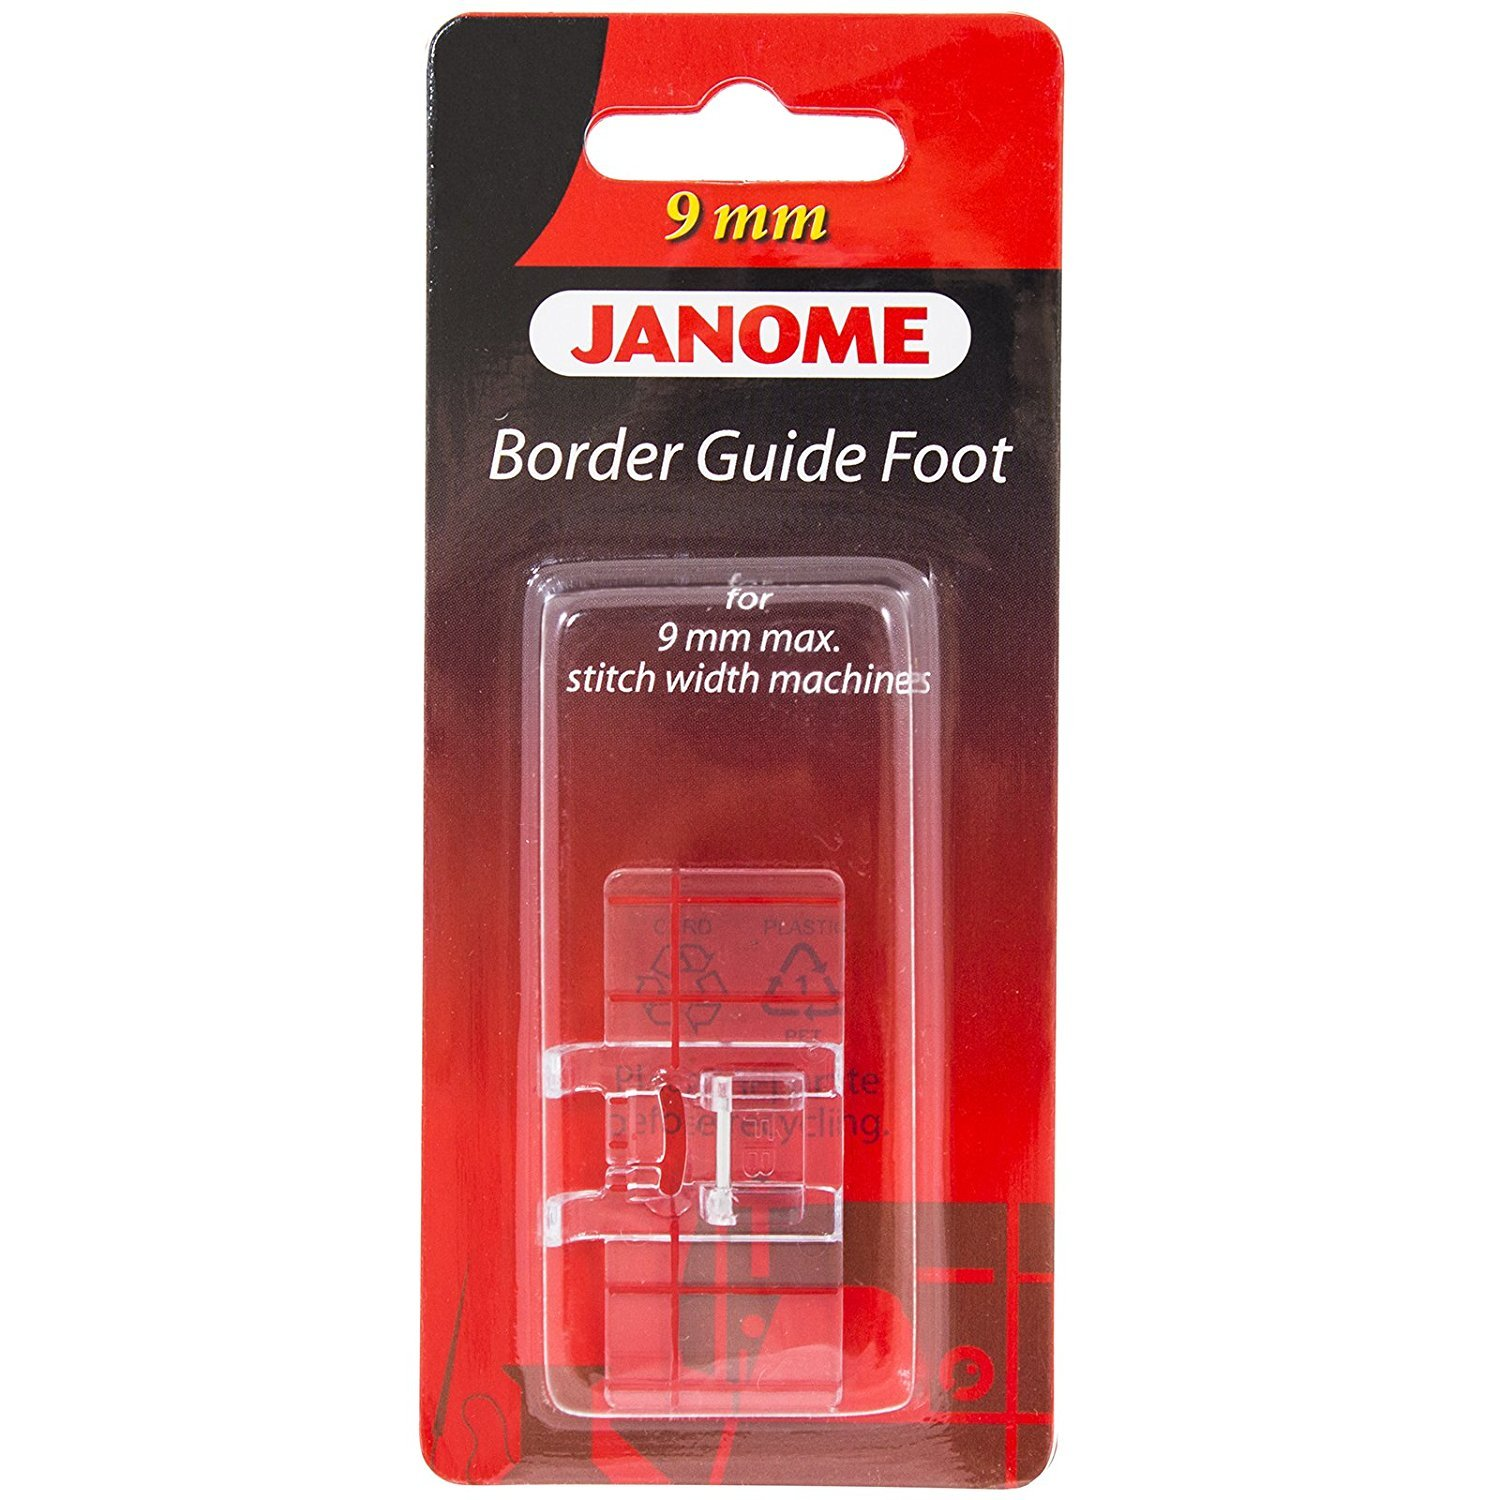 Janome Border Guide Foot 9mm  - 202084000